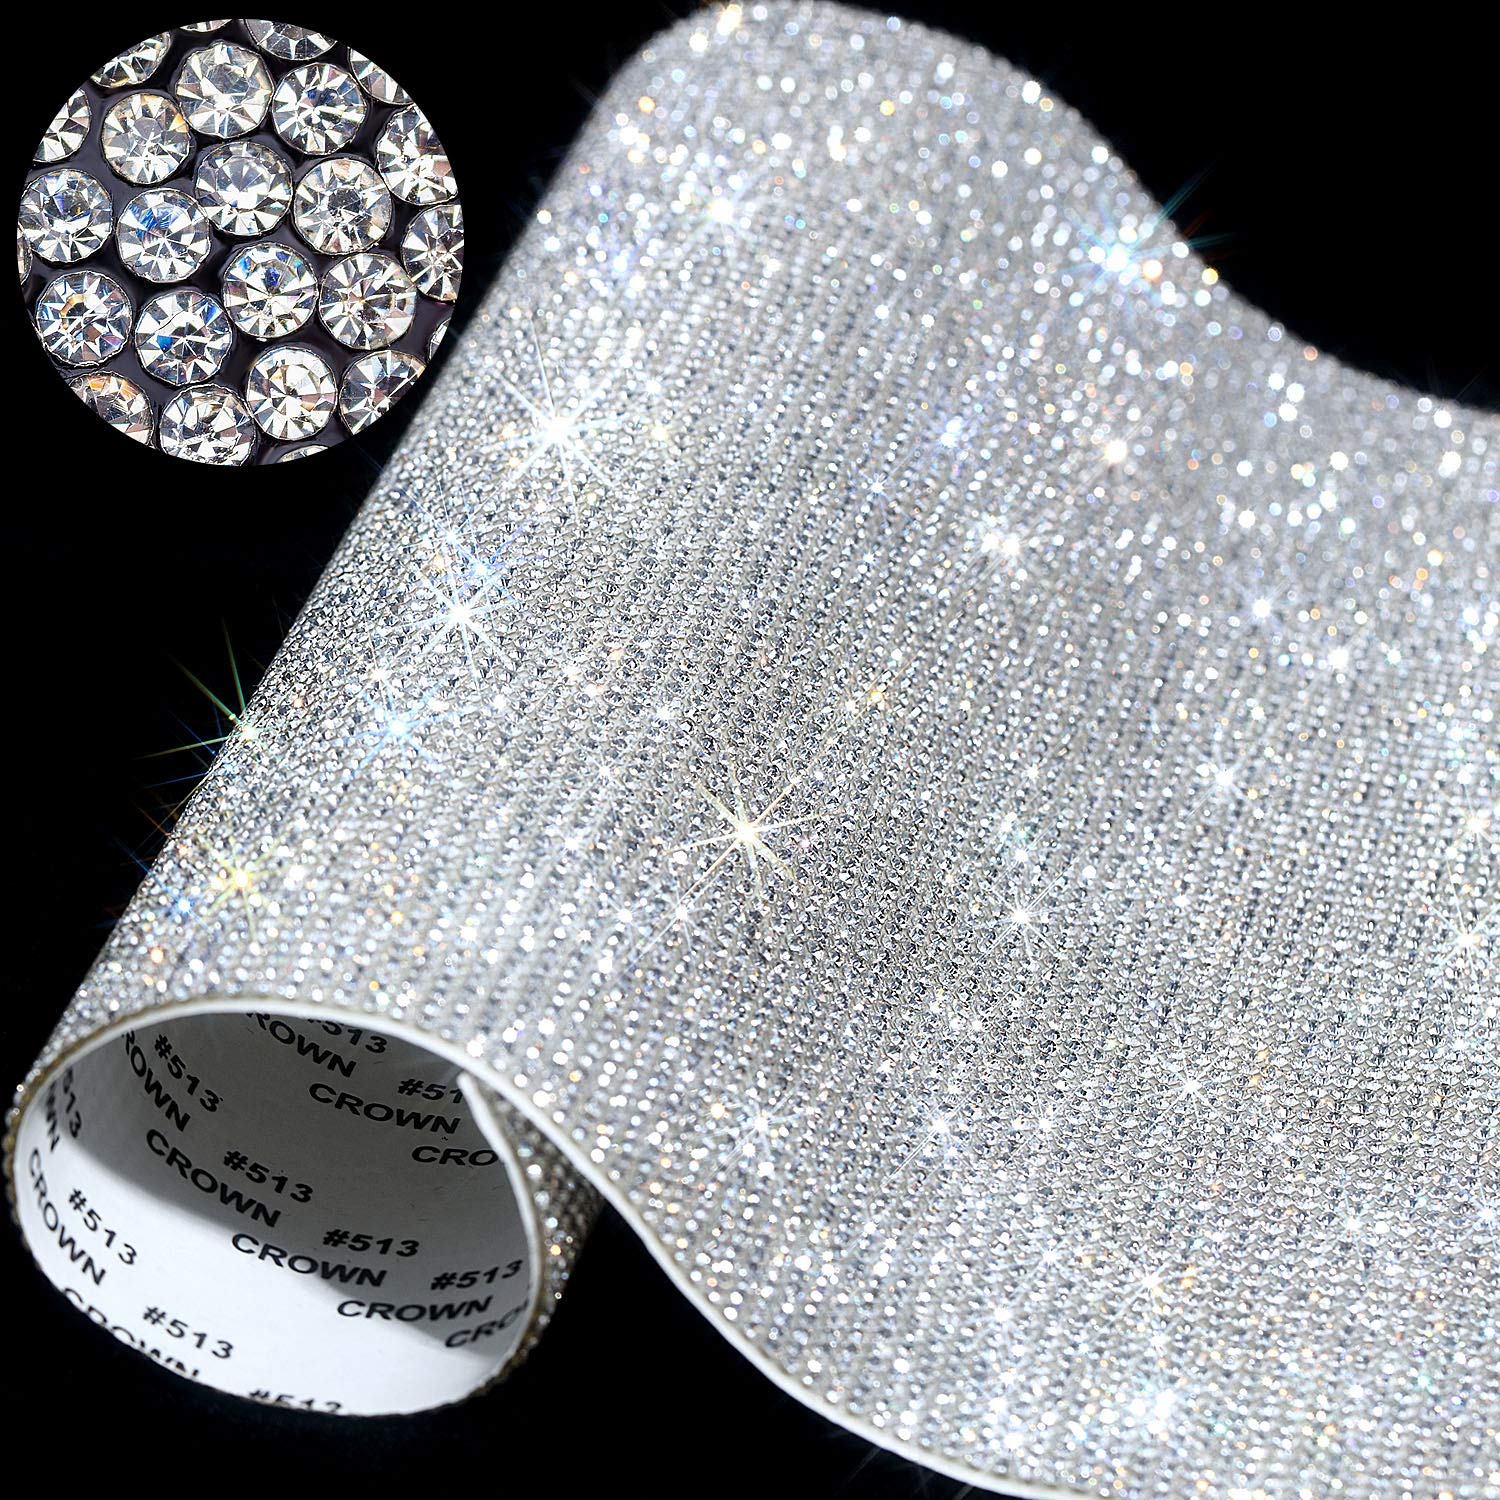 Black DXDECOR 9.4in X 15.7in Bling Crystal Rhinestone DIY Decoration Sticker,Self Adhesive Crystal Sheet with 2mm Rhinestones